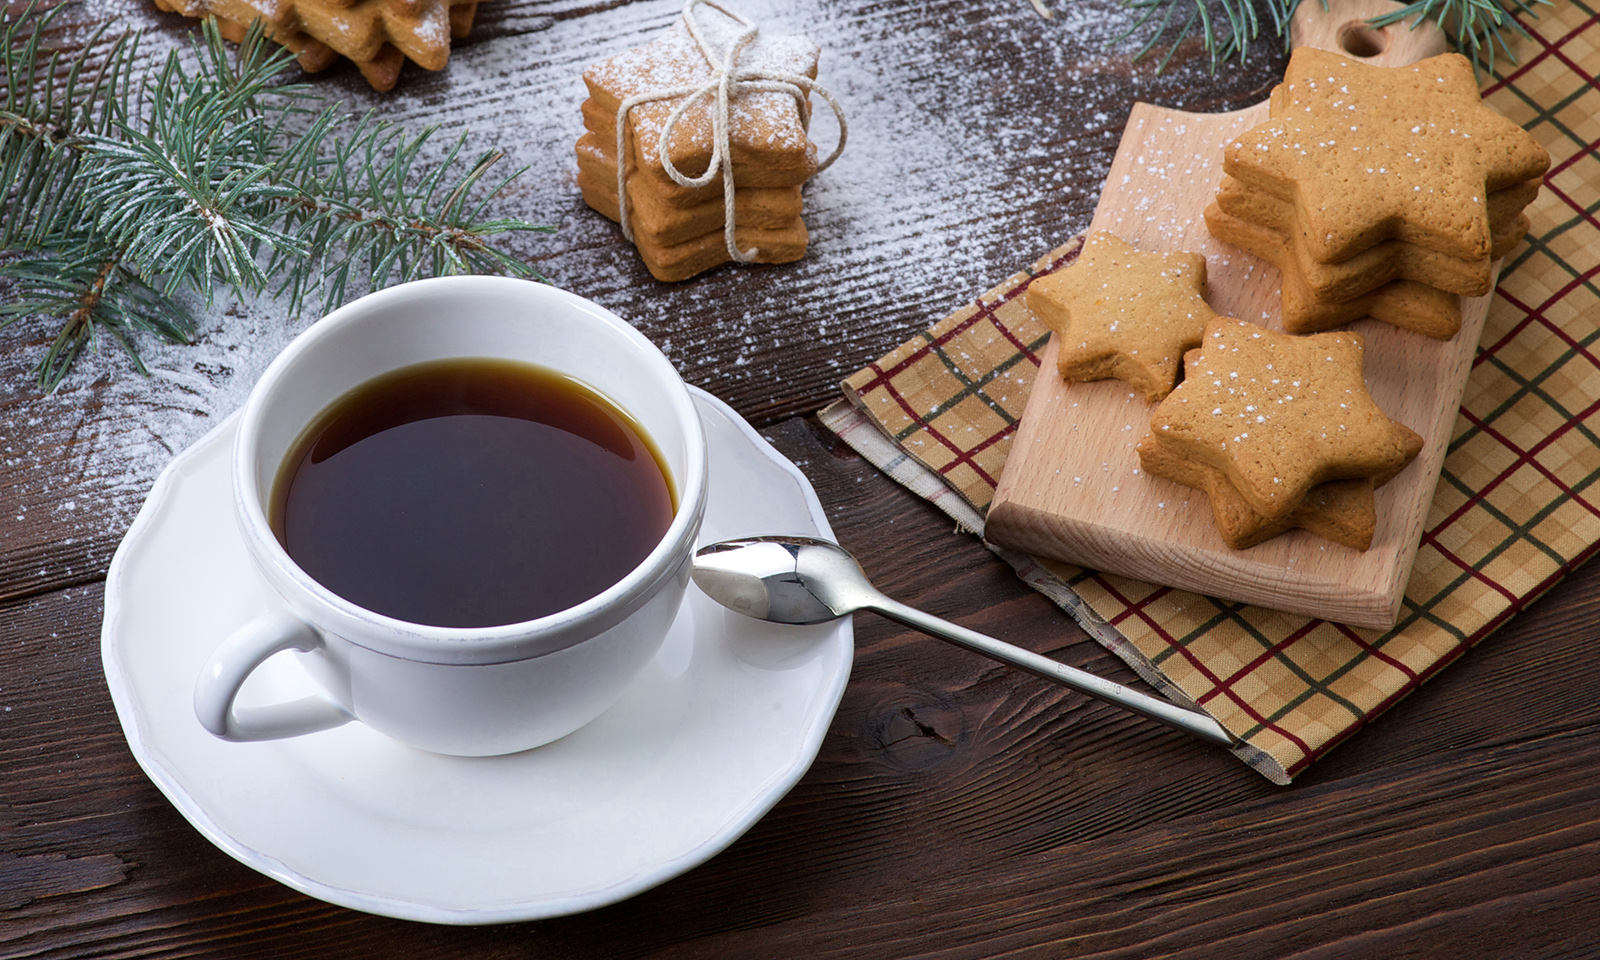 3-best-foods-to-eat-at-bedtime-tasty-tea-and-holiday-treats